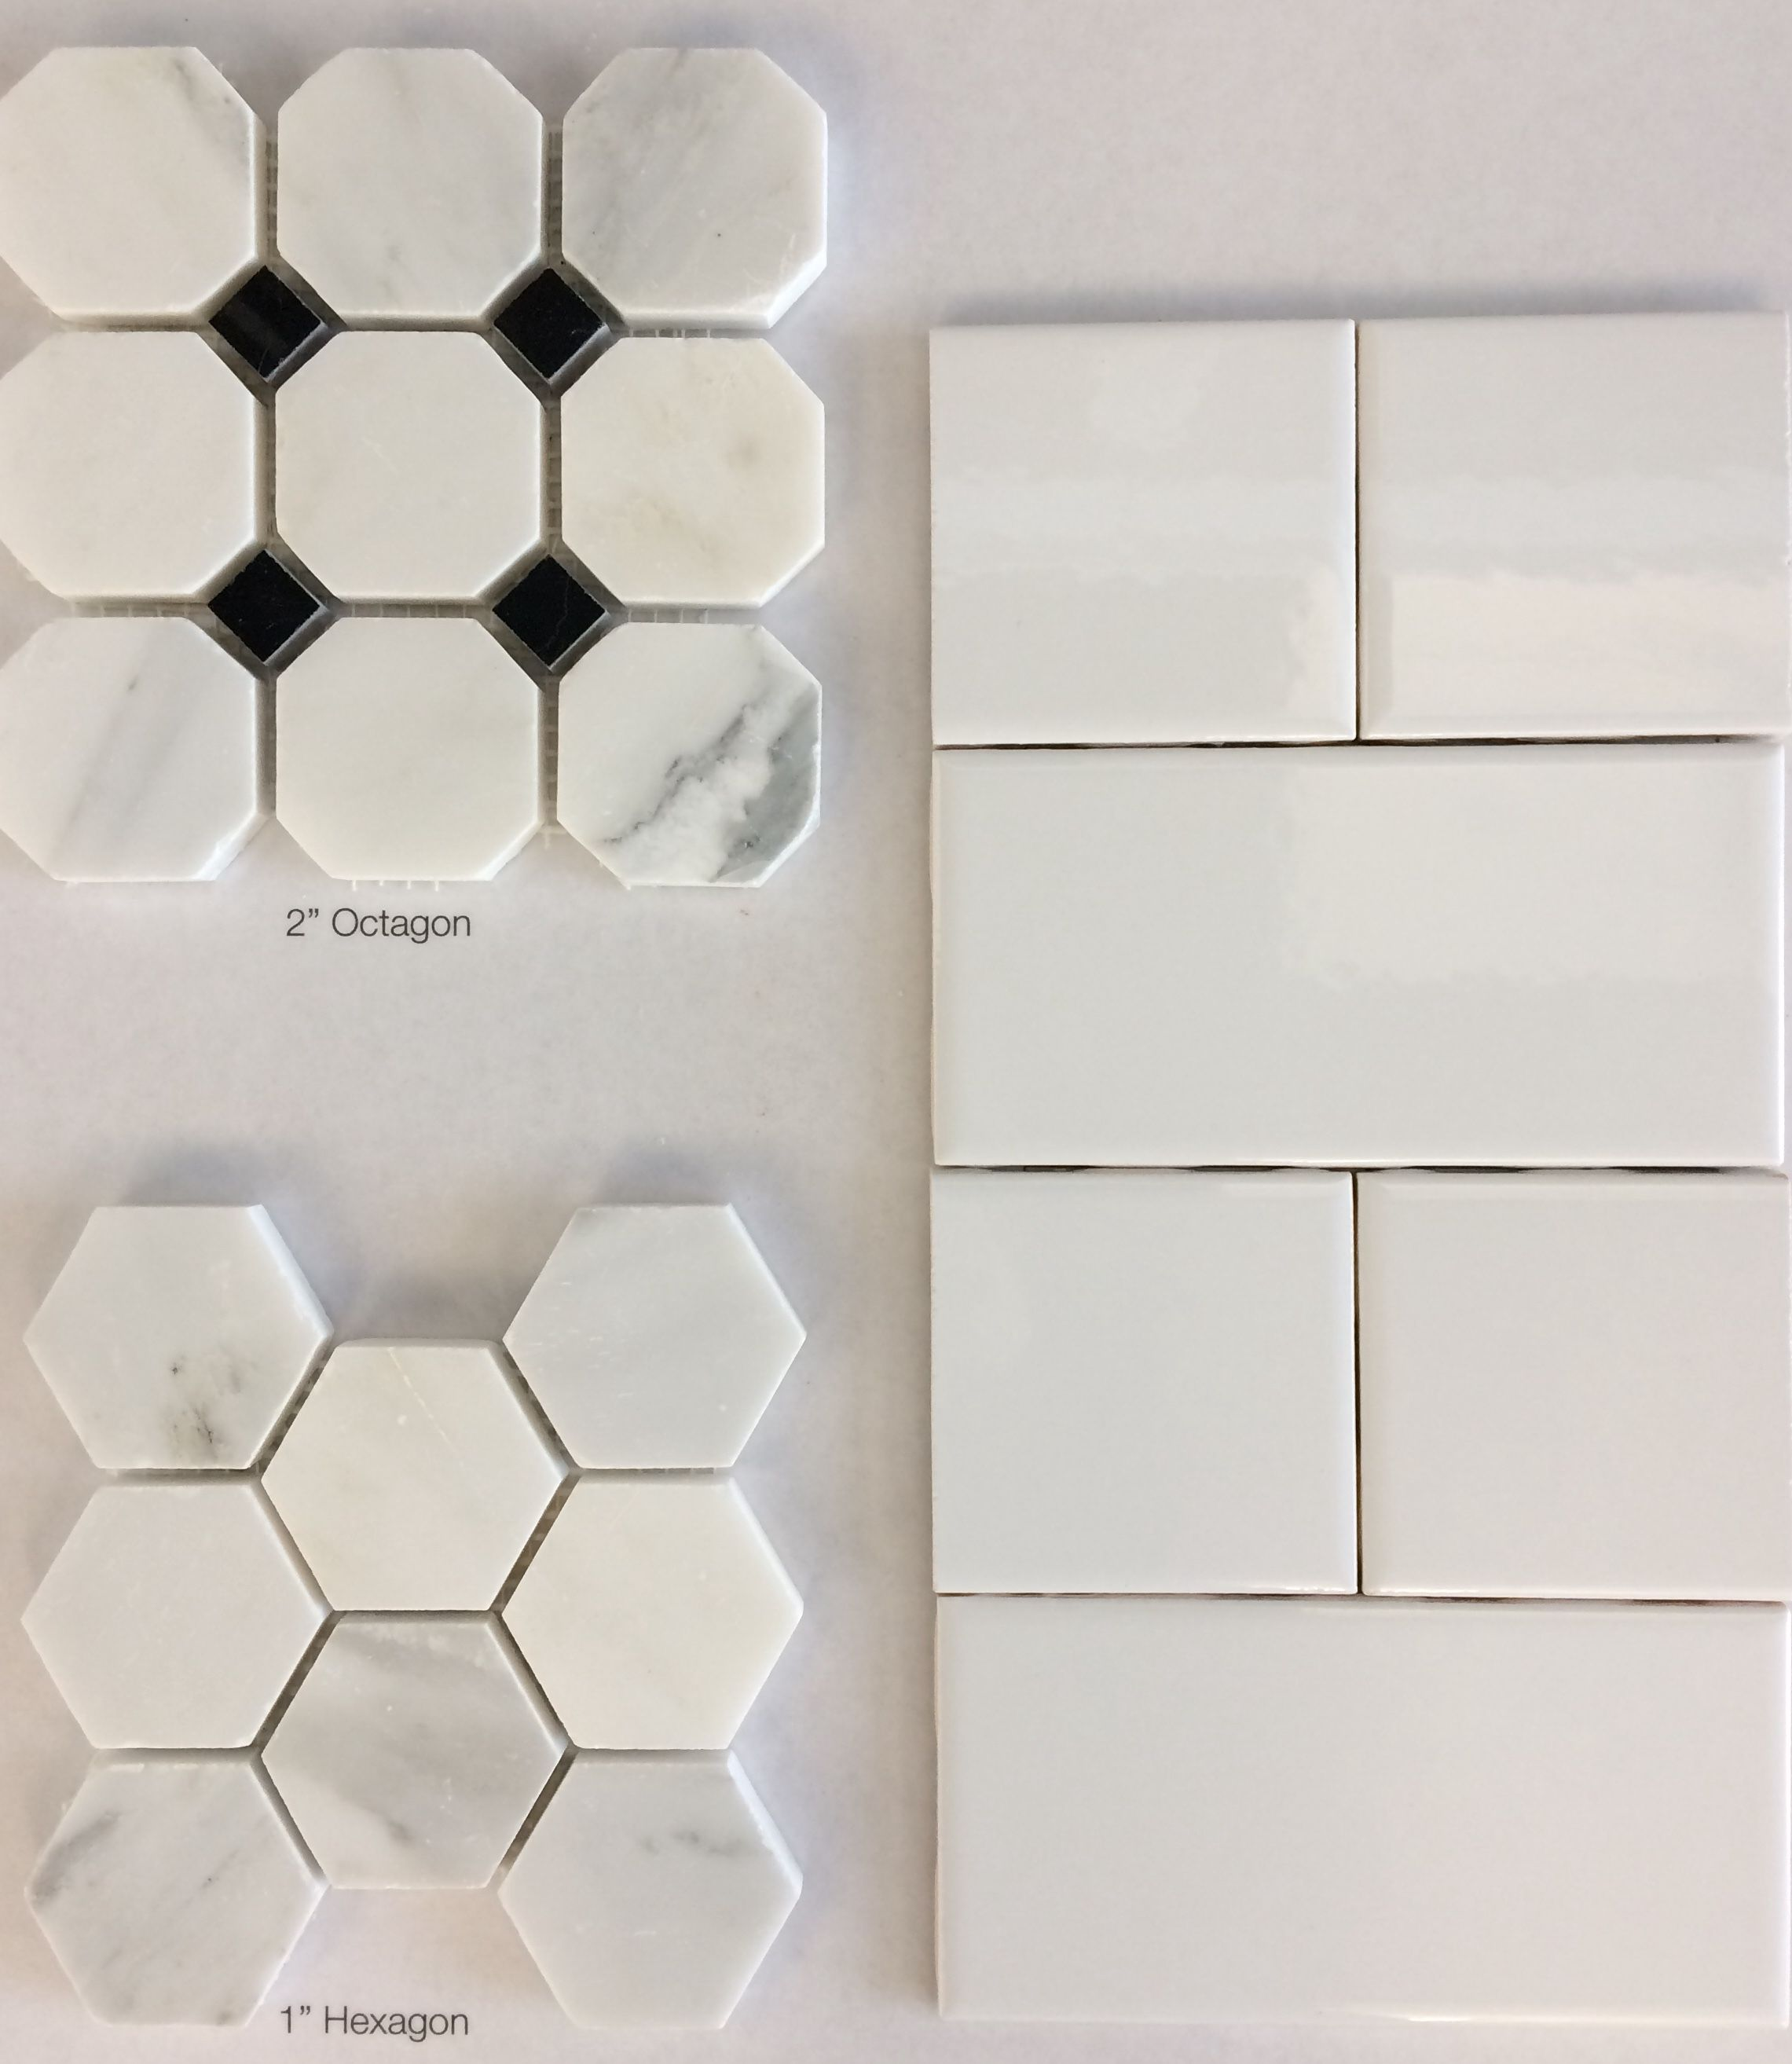 Level 4 Bath Tile 1 Hexagon Or 2 Octagon Black Dot Marble Floor Tile With 3 X6 White Ice Ceramic Wall Tile Bath Tiles Marble Tile Floor Ceramic Wall Tiles